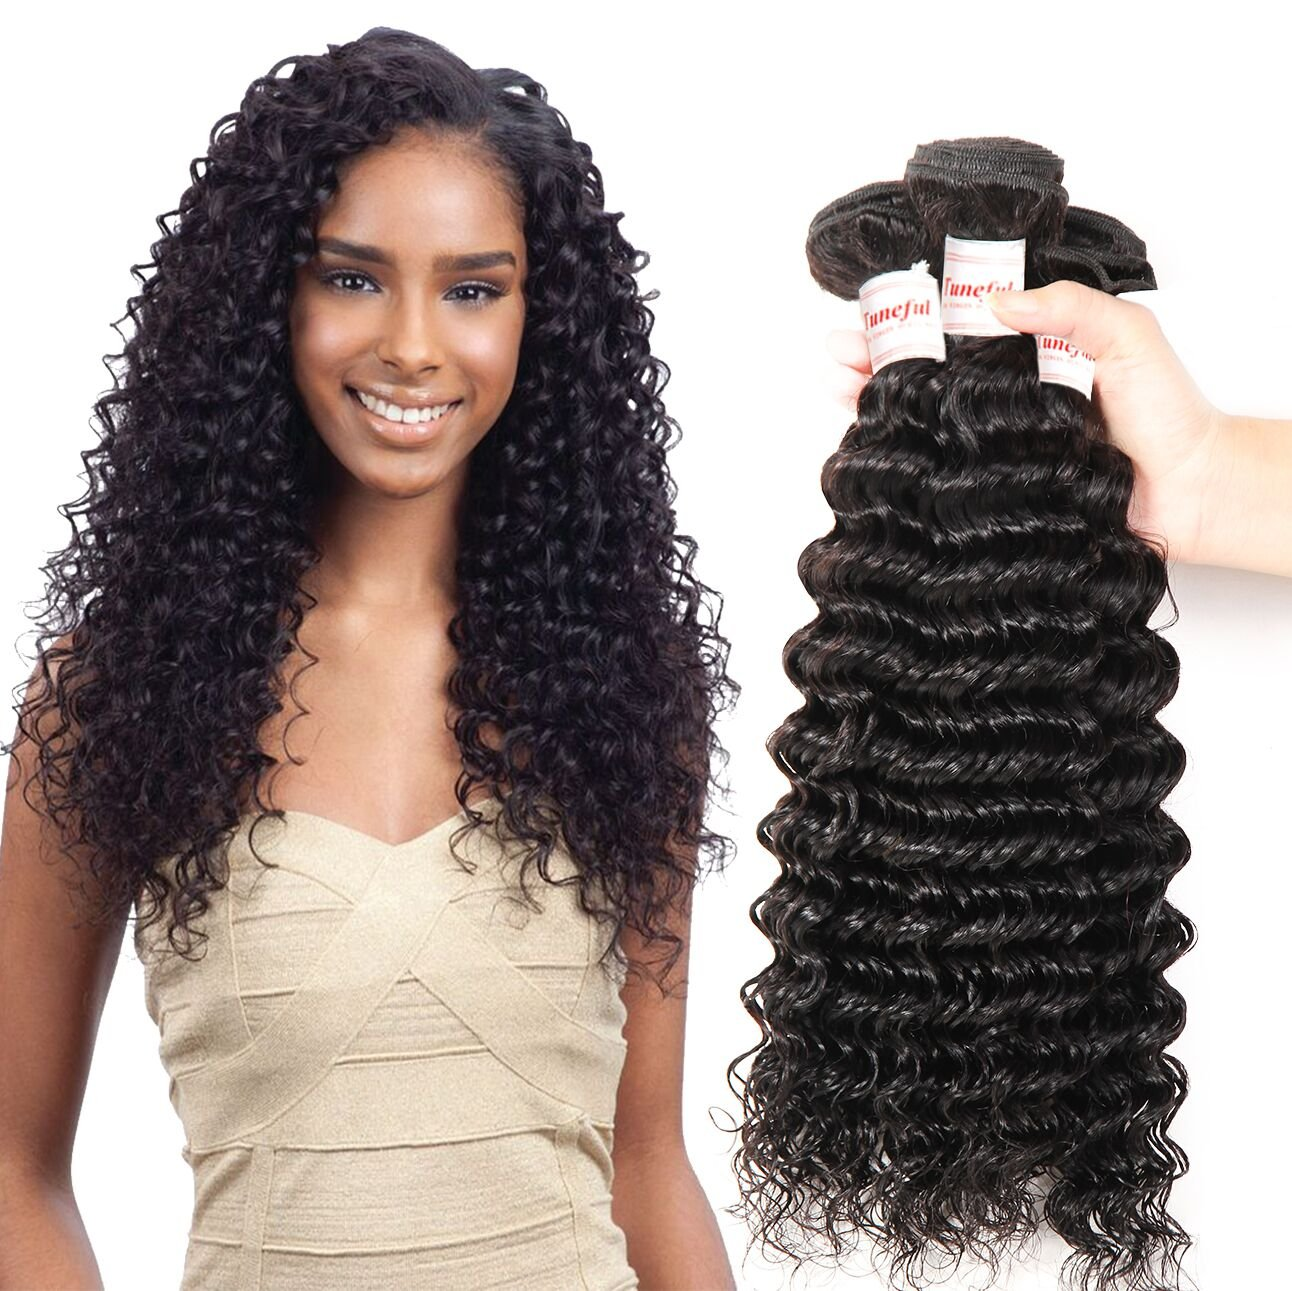 Amazon tuneful brazilian deep wave hair 3 bundles remy amazon tuneful brazilian deep wave hair 3 bundles remy virgin human weave 7a grade deep curly hair extensions 10 12 14 inch natural color beauty pmusecretfo Images